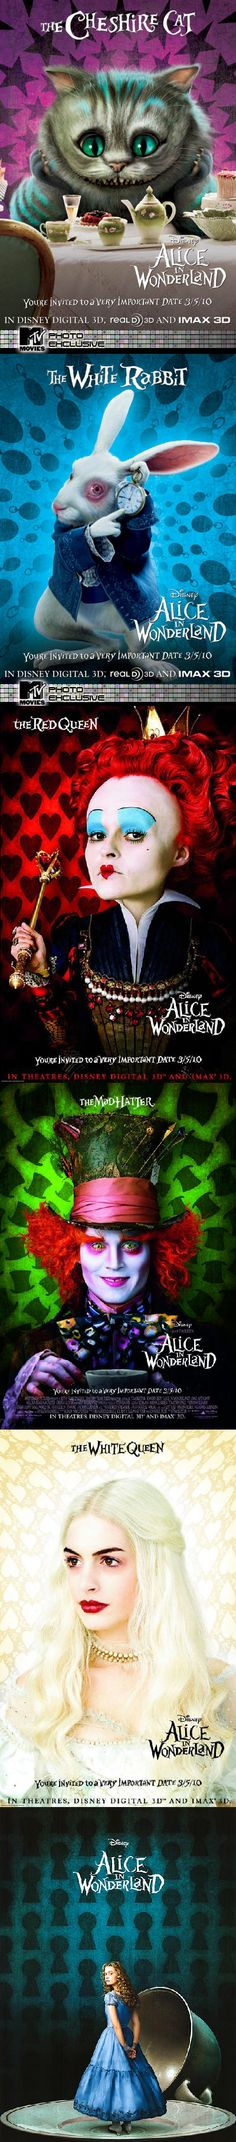 Alice In Wonderland - Tim Burton Style